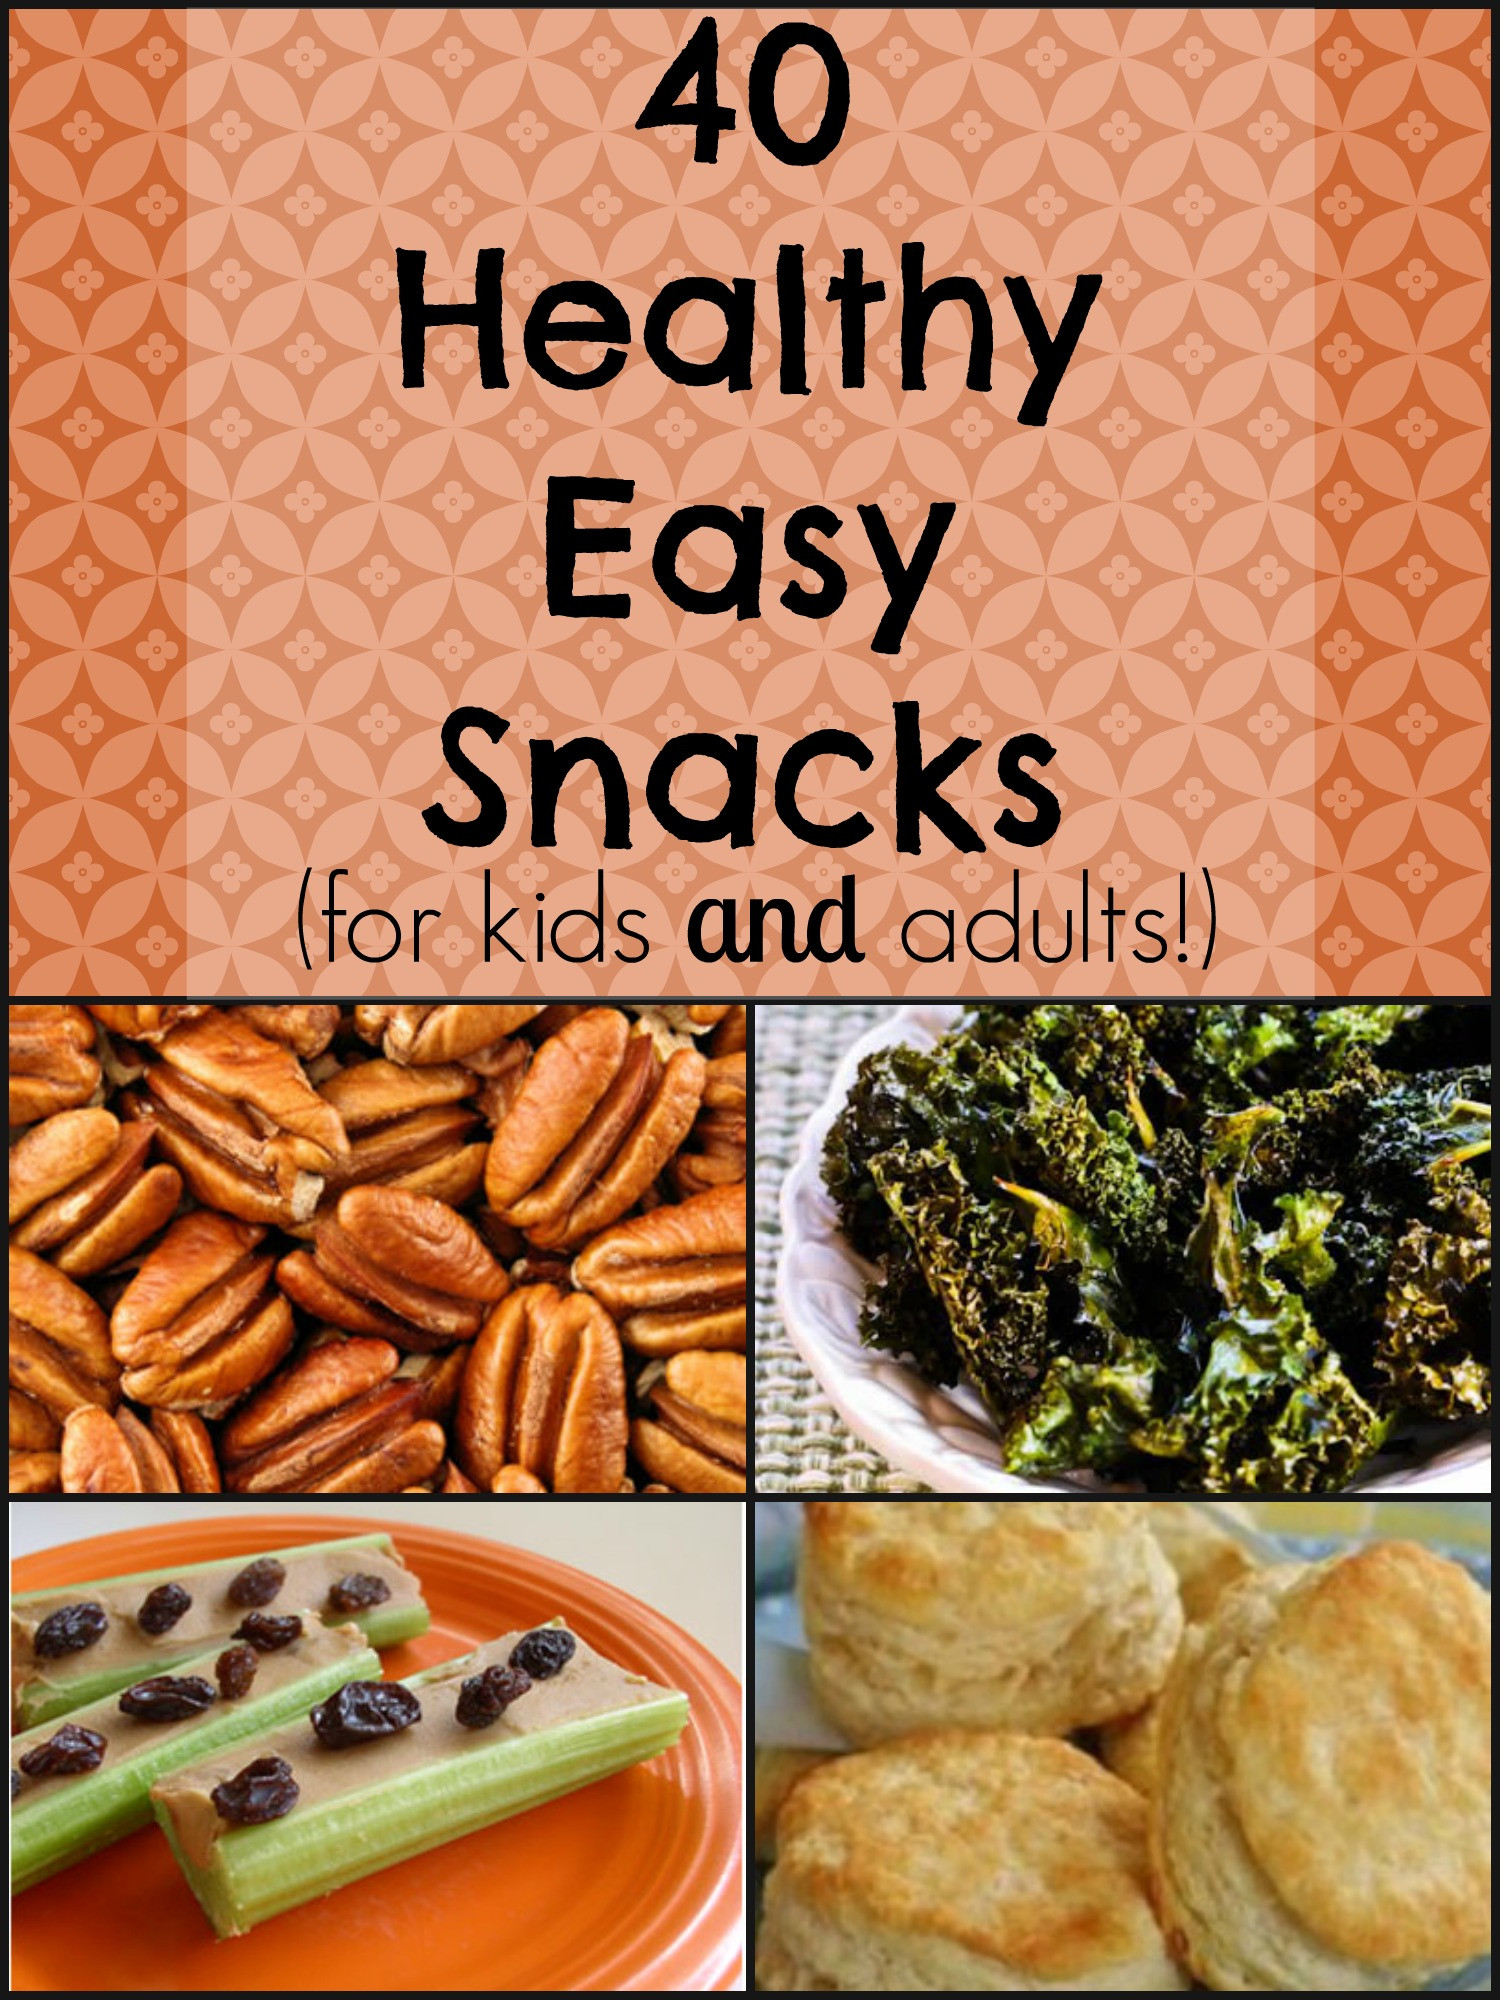 Healthy Adult Snacks  40 Healthy Easy Snacks for kids and adults